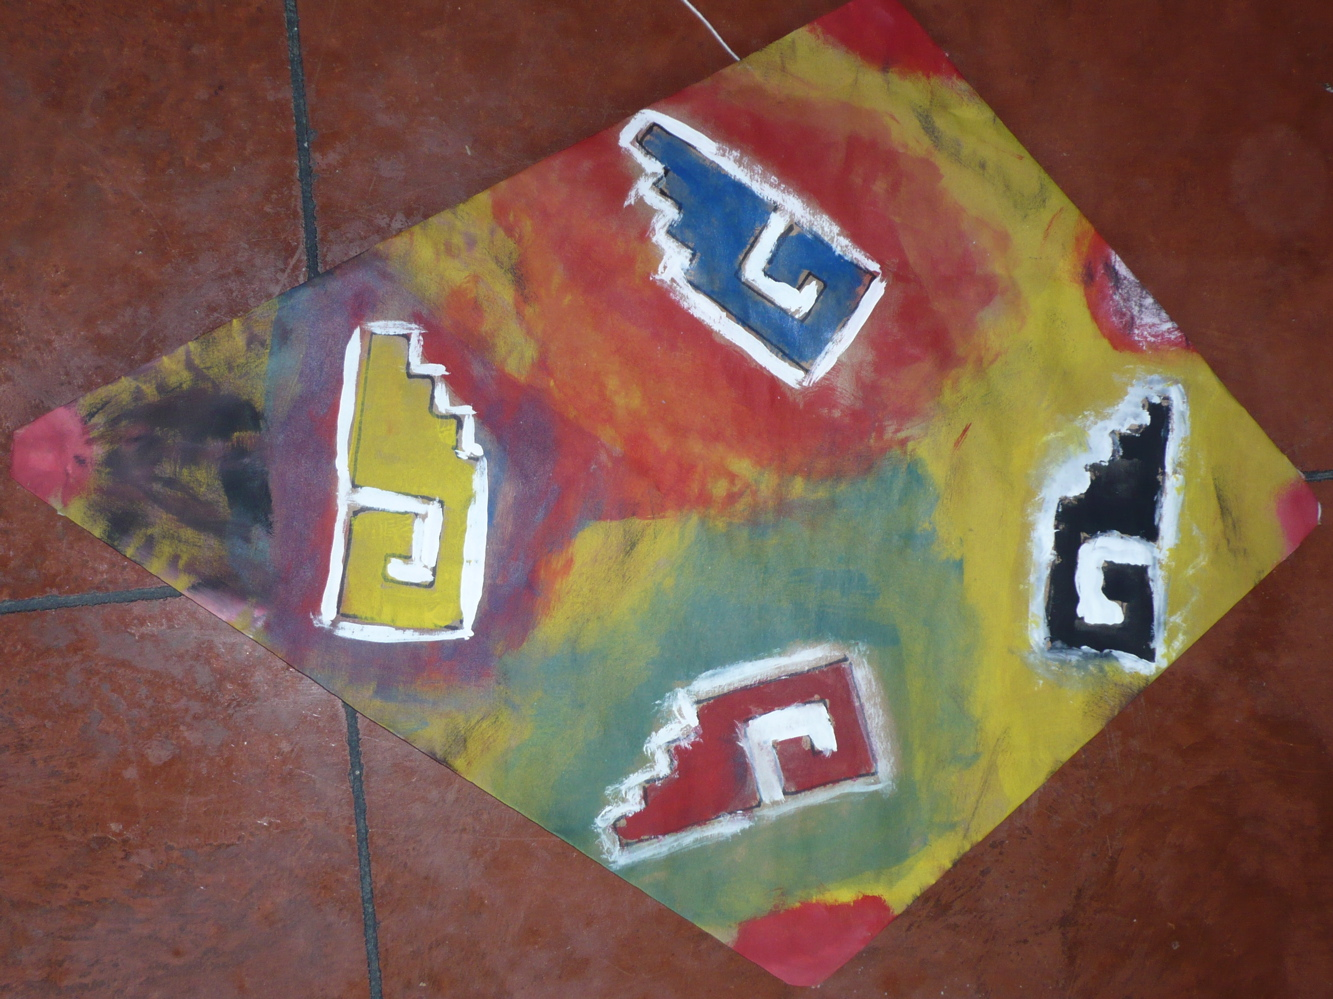 Eric's Kite with Zapotec Pattern